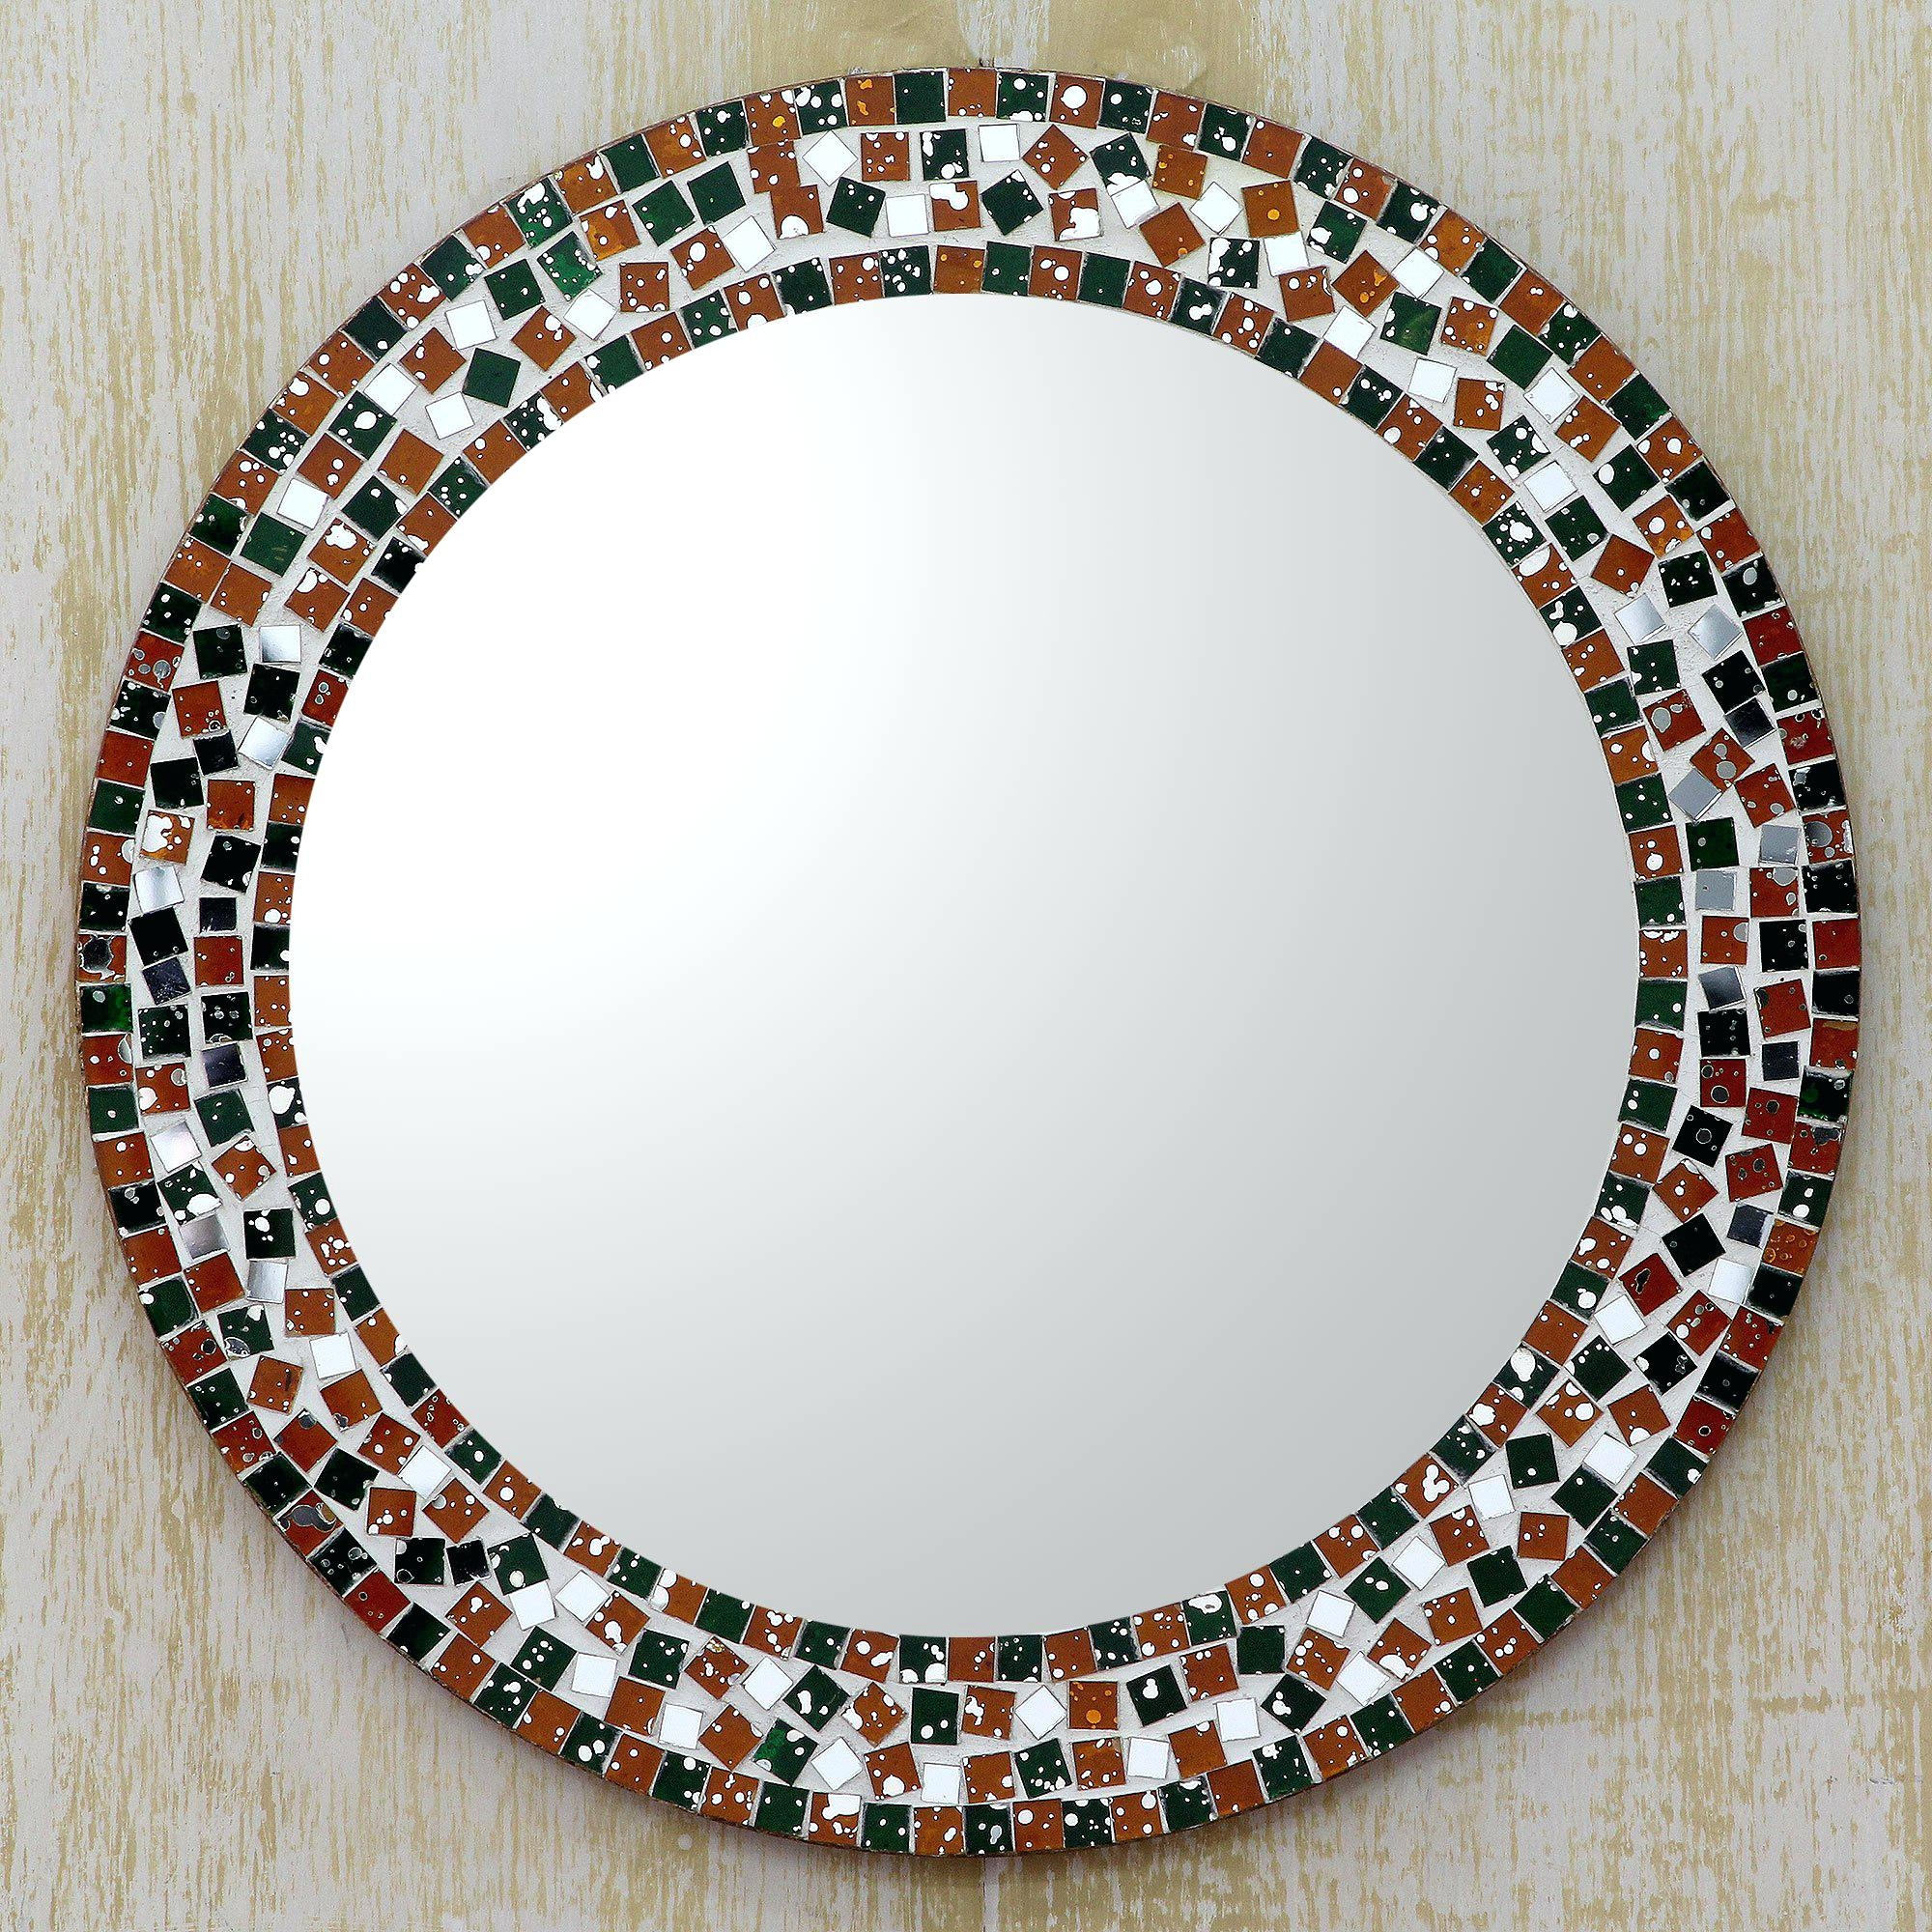 Mosaic Mirror Teal And Silver Round Wall Mirrorround Mirrors For In Round Mirrors For Sale (Image 7 of 15)